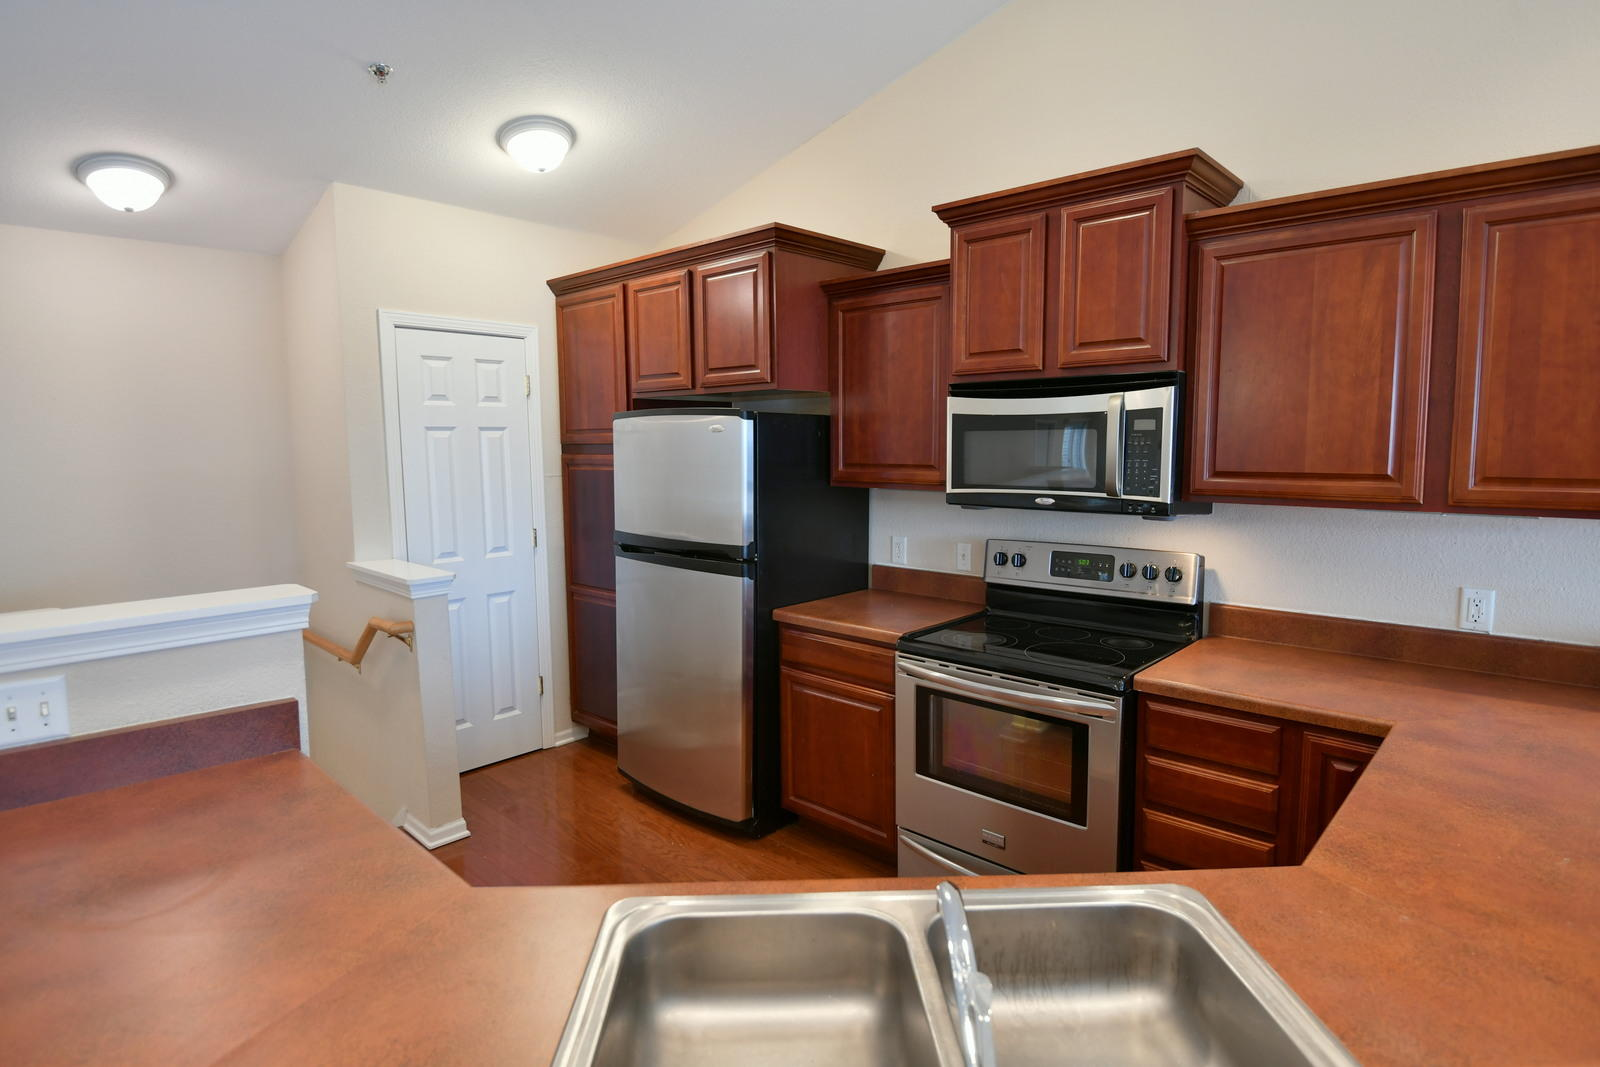 6301 44th St, Somers, Wisconsin 53144, 3 Bedrooms Bedrooms, 7 Rooms Rooms,2 BathroomsBathrooms,Condominiums,For Sale,44th St,2,1622482